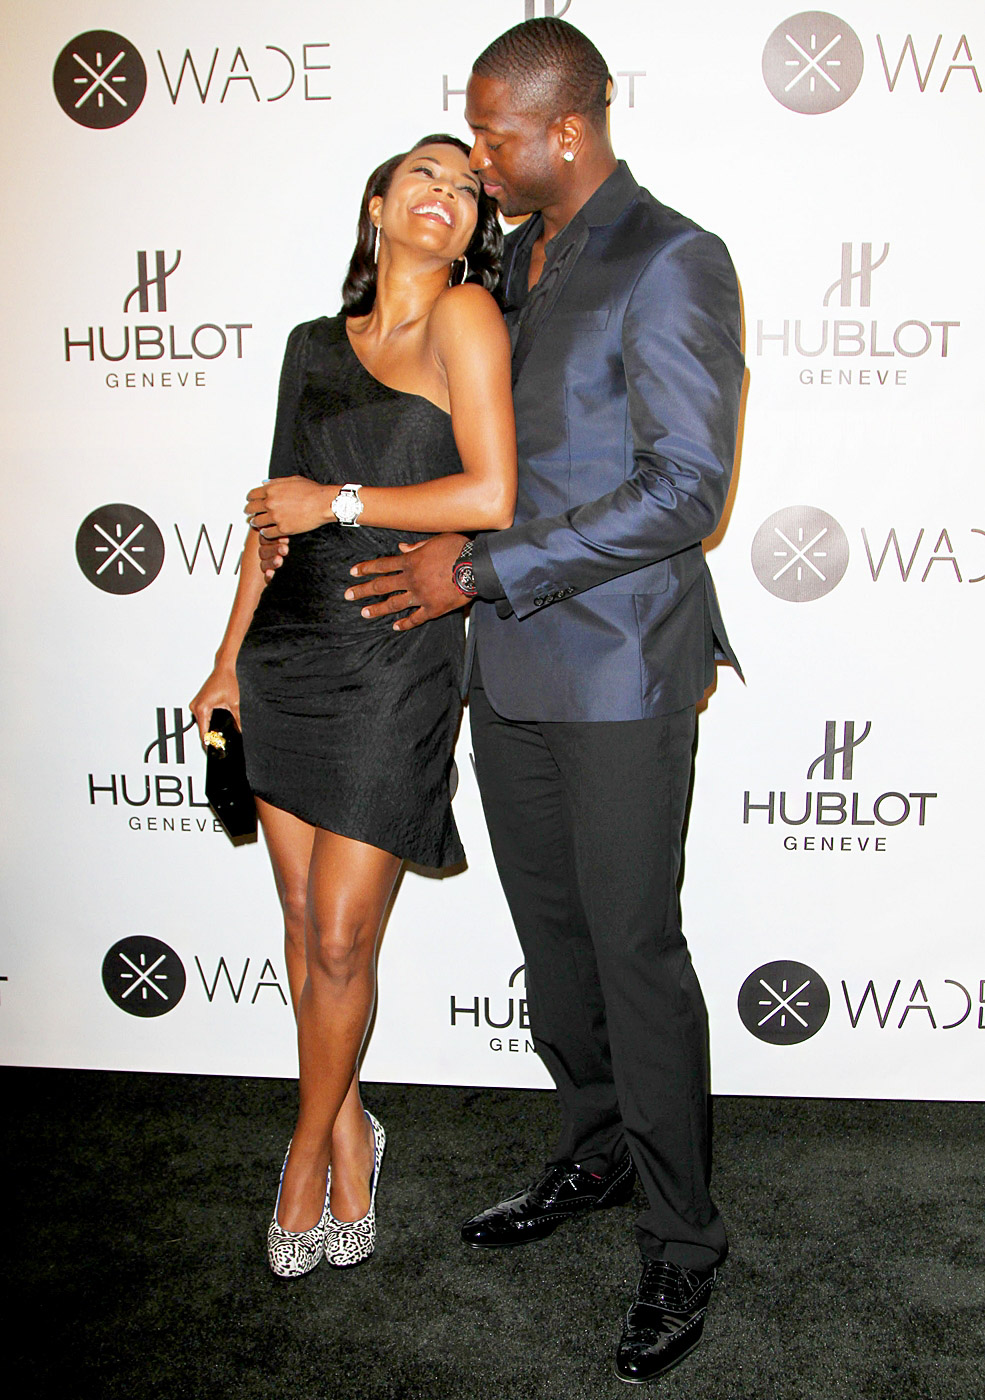 2. Gabrielle Union - Age: 46Husband: Dwayne Wade, 37Age Difference: 9 yearsYears Together: 10Kids: The couple adopted their first child in 2019.